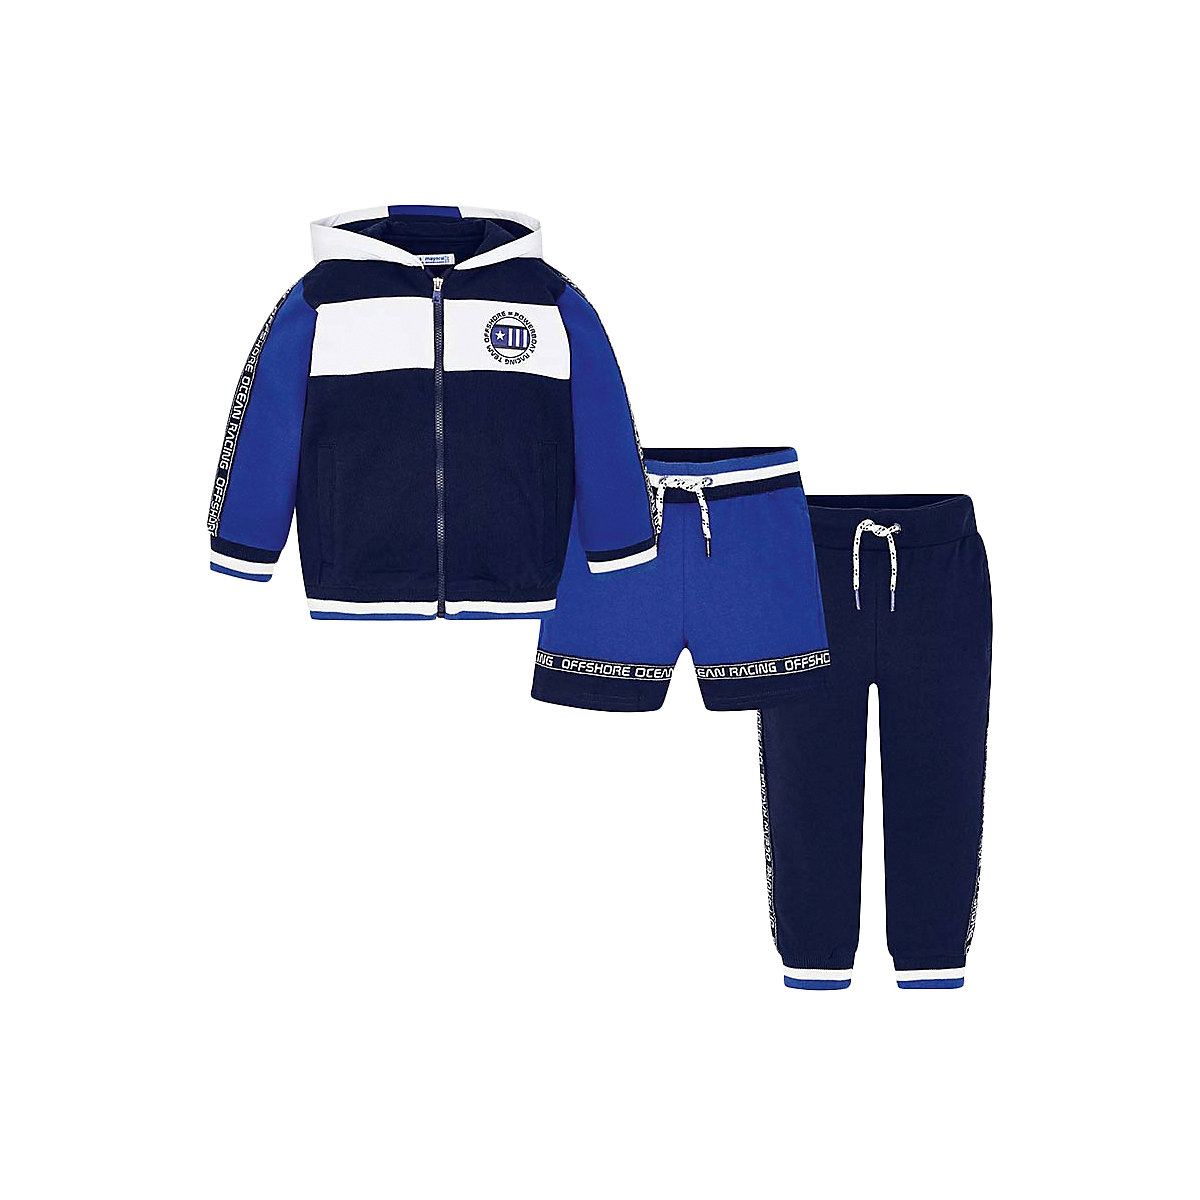 Children Two-Piece Suits Mayoral 10685207 Children Sportswear Accessories Costumes For The Child